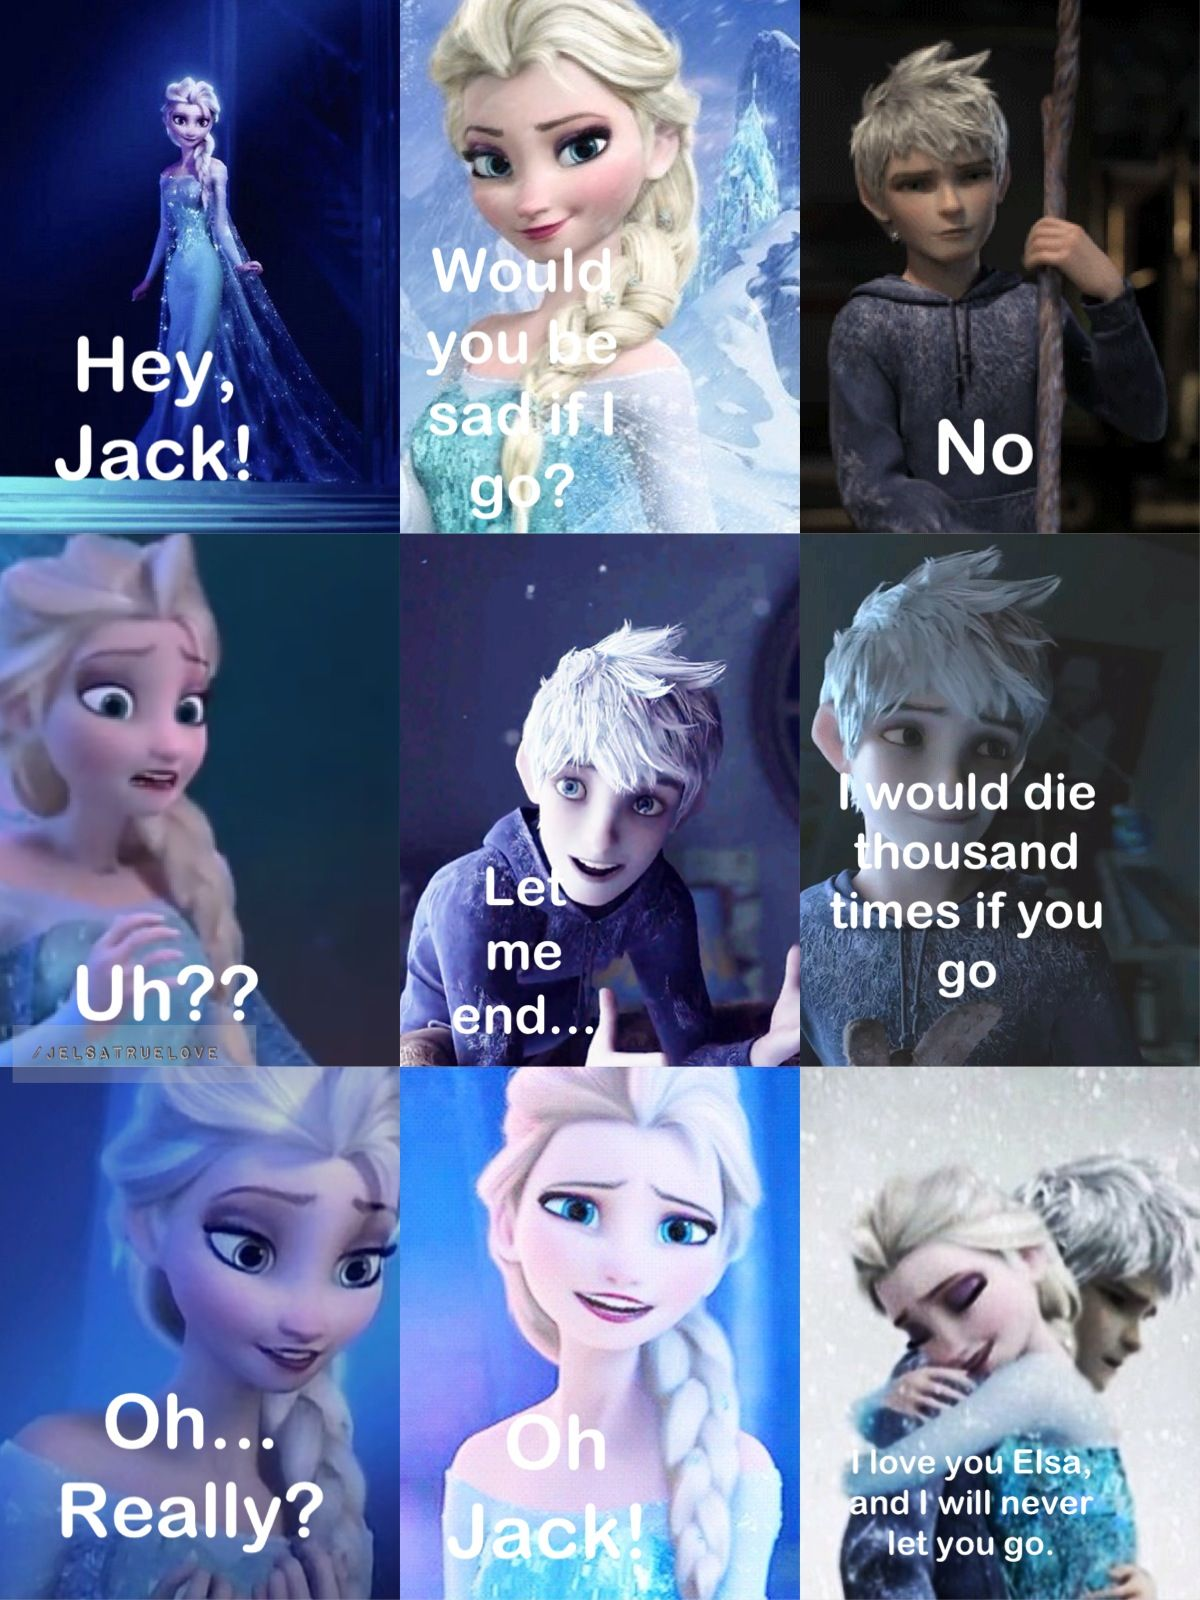 Jelsa's relationship. Jack and Elsa are ADSGAGGAHAGASSFSK SWEET